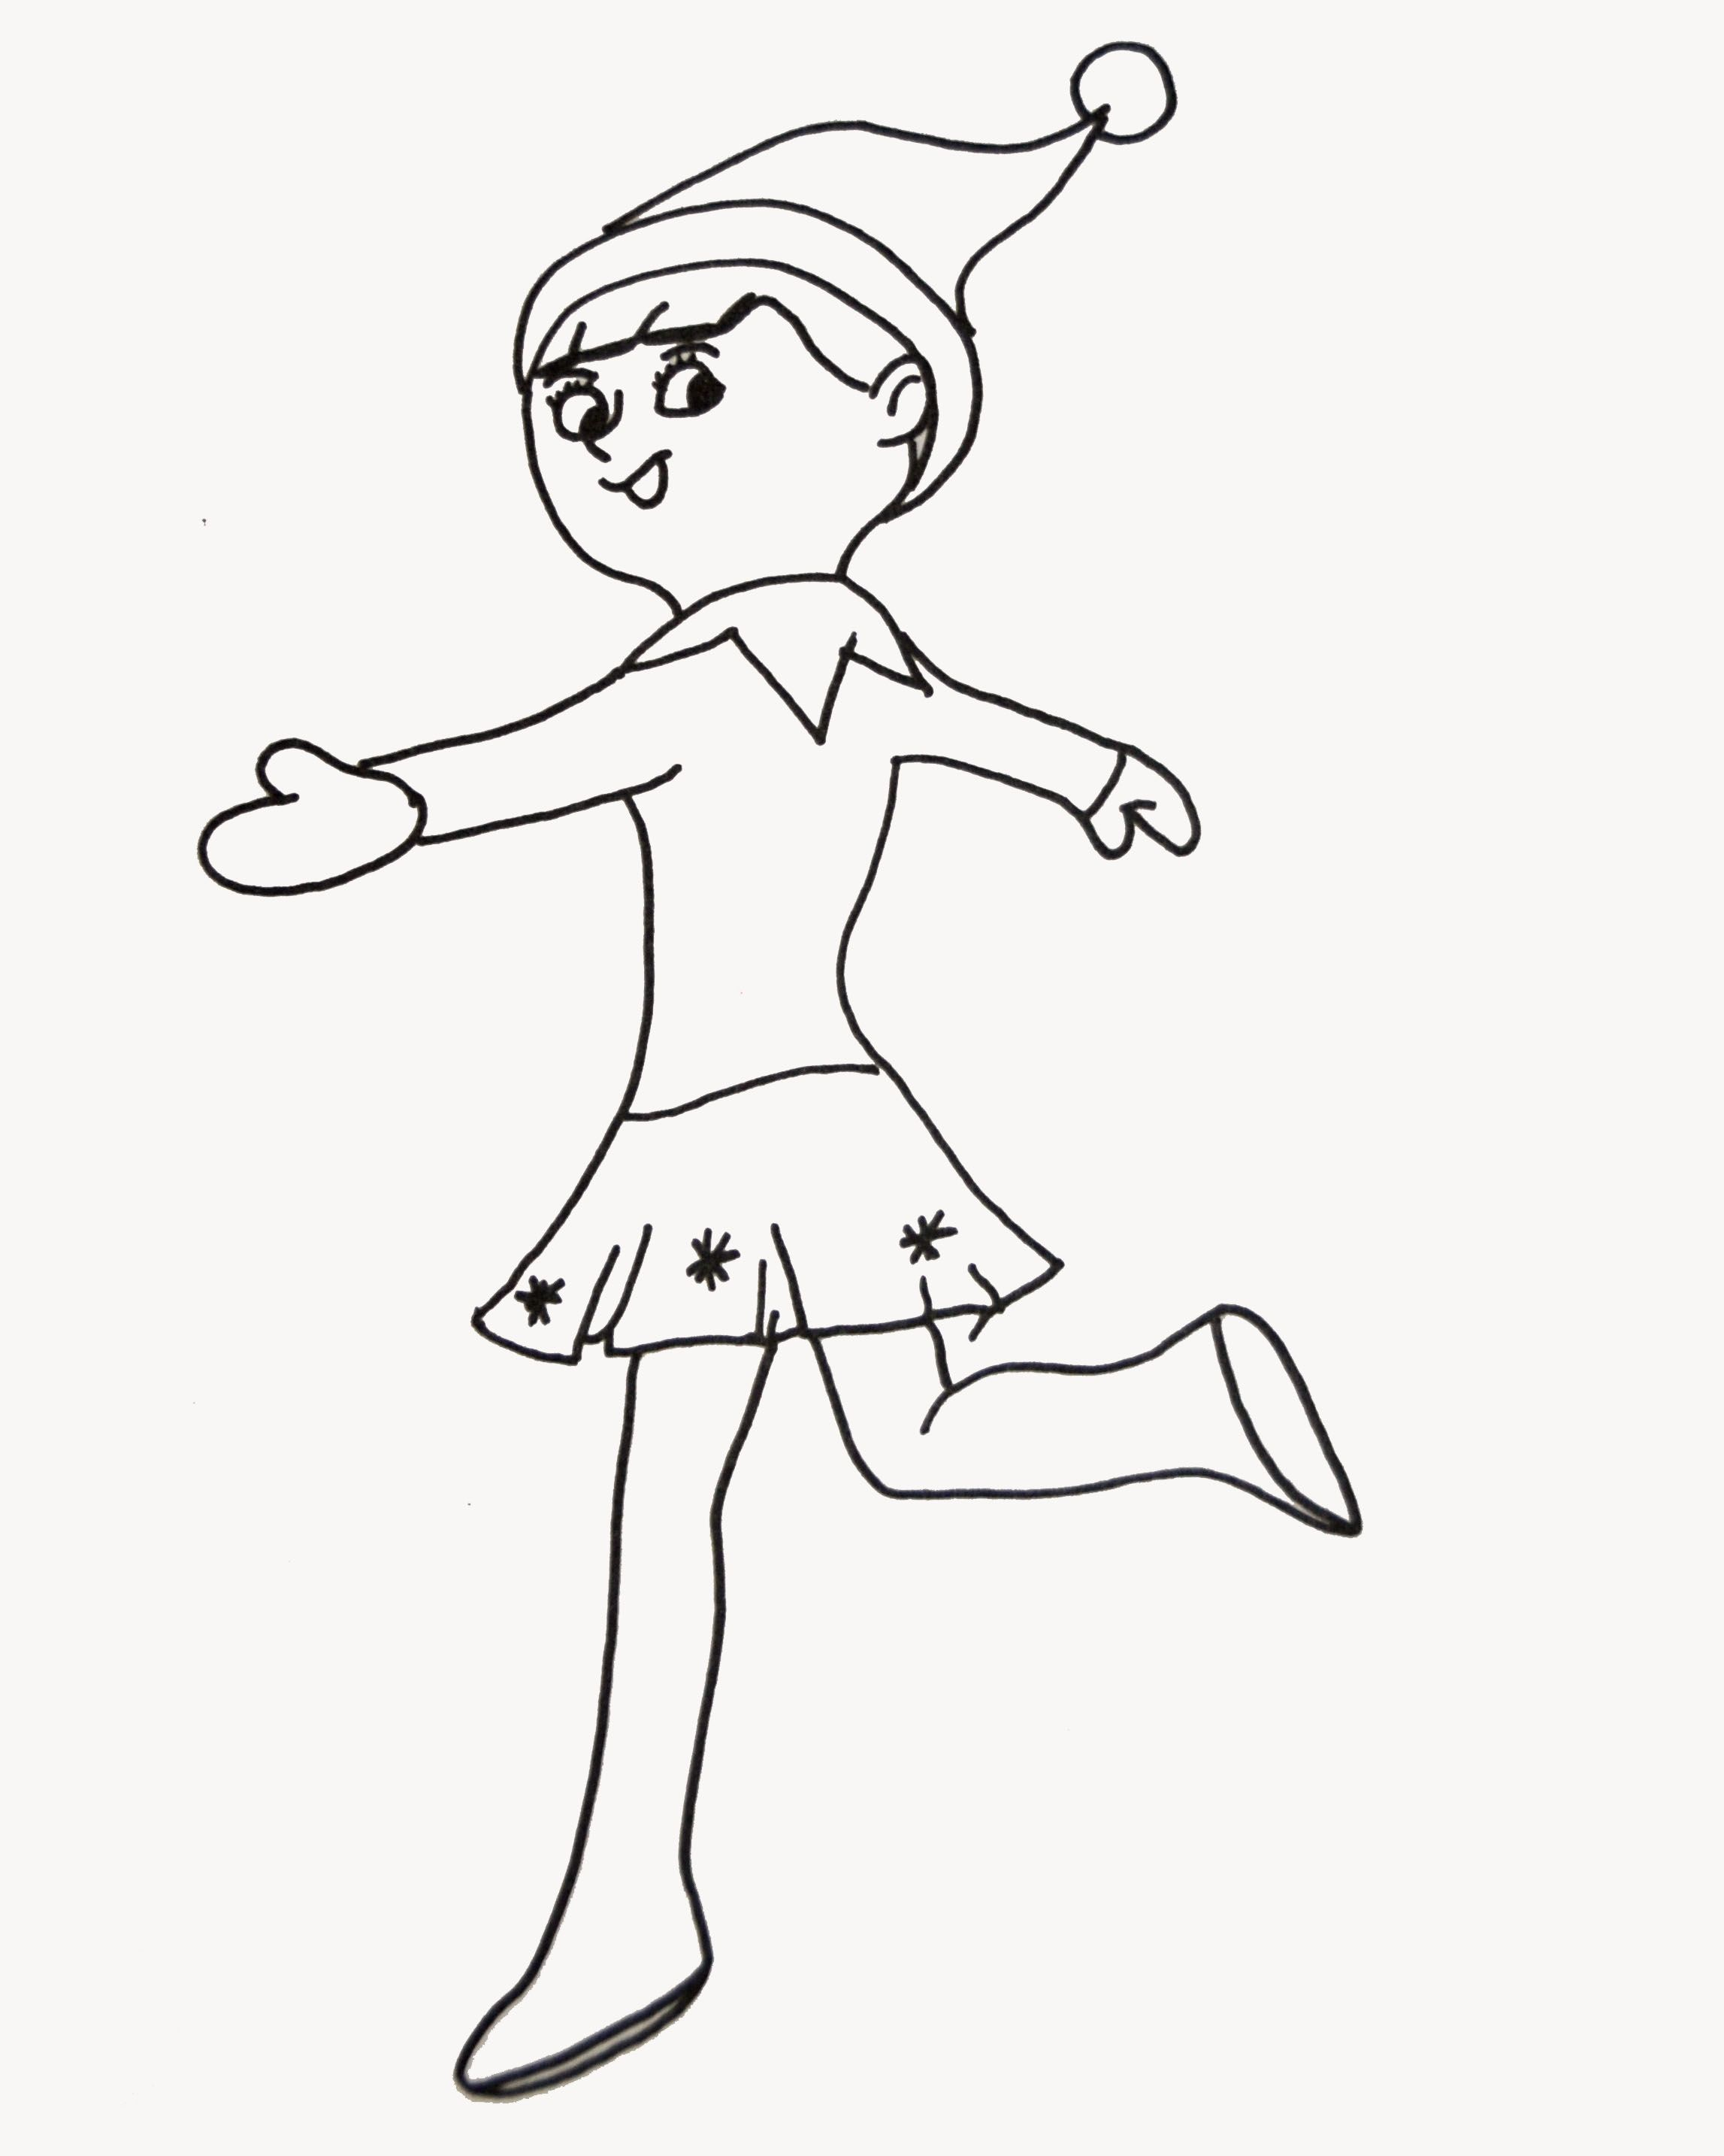 elf on the shelf coloring page elf on a shelf ideas pinterest